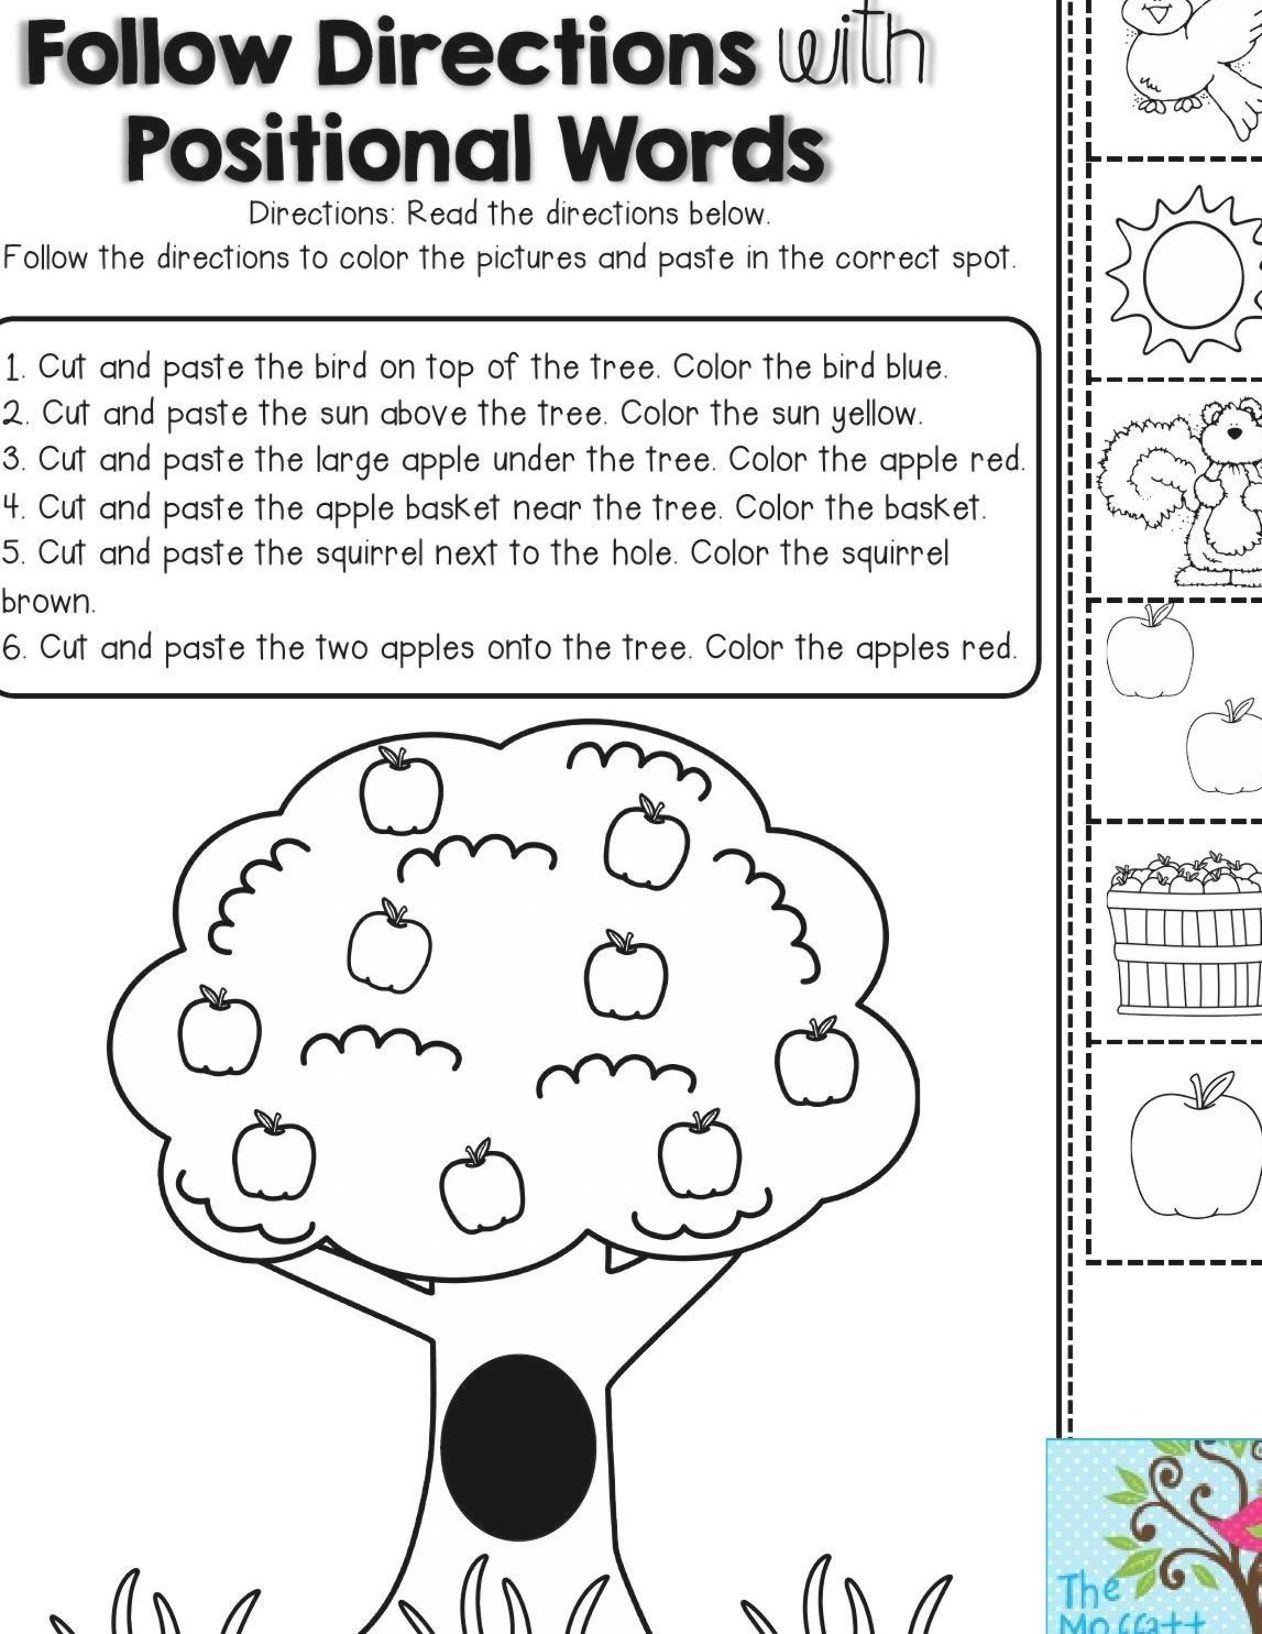 hight resolution of Follow Directions with Positional Words- fun activity for First Grade to  help stu…   Listening activities for kids